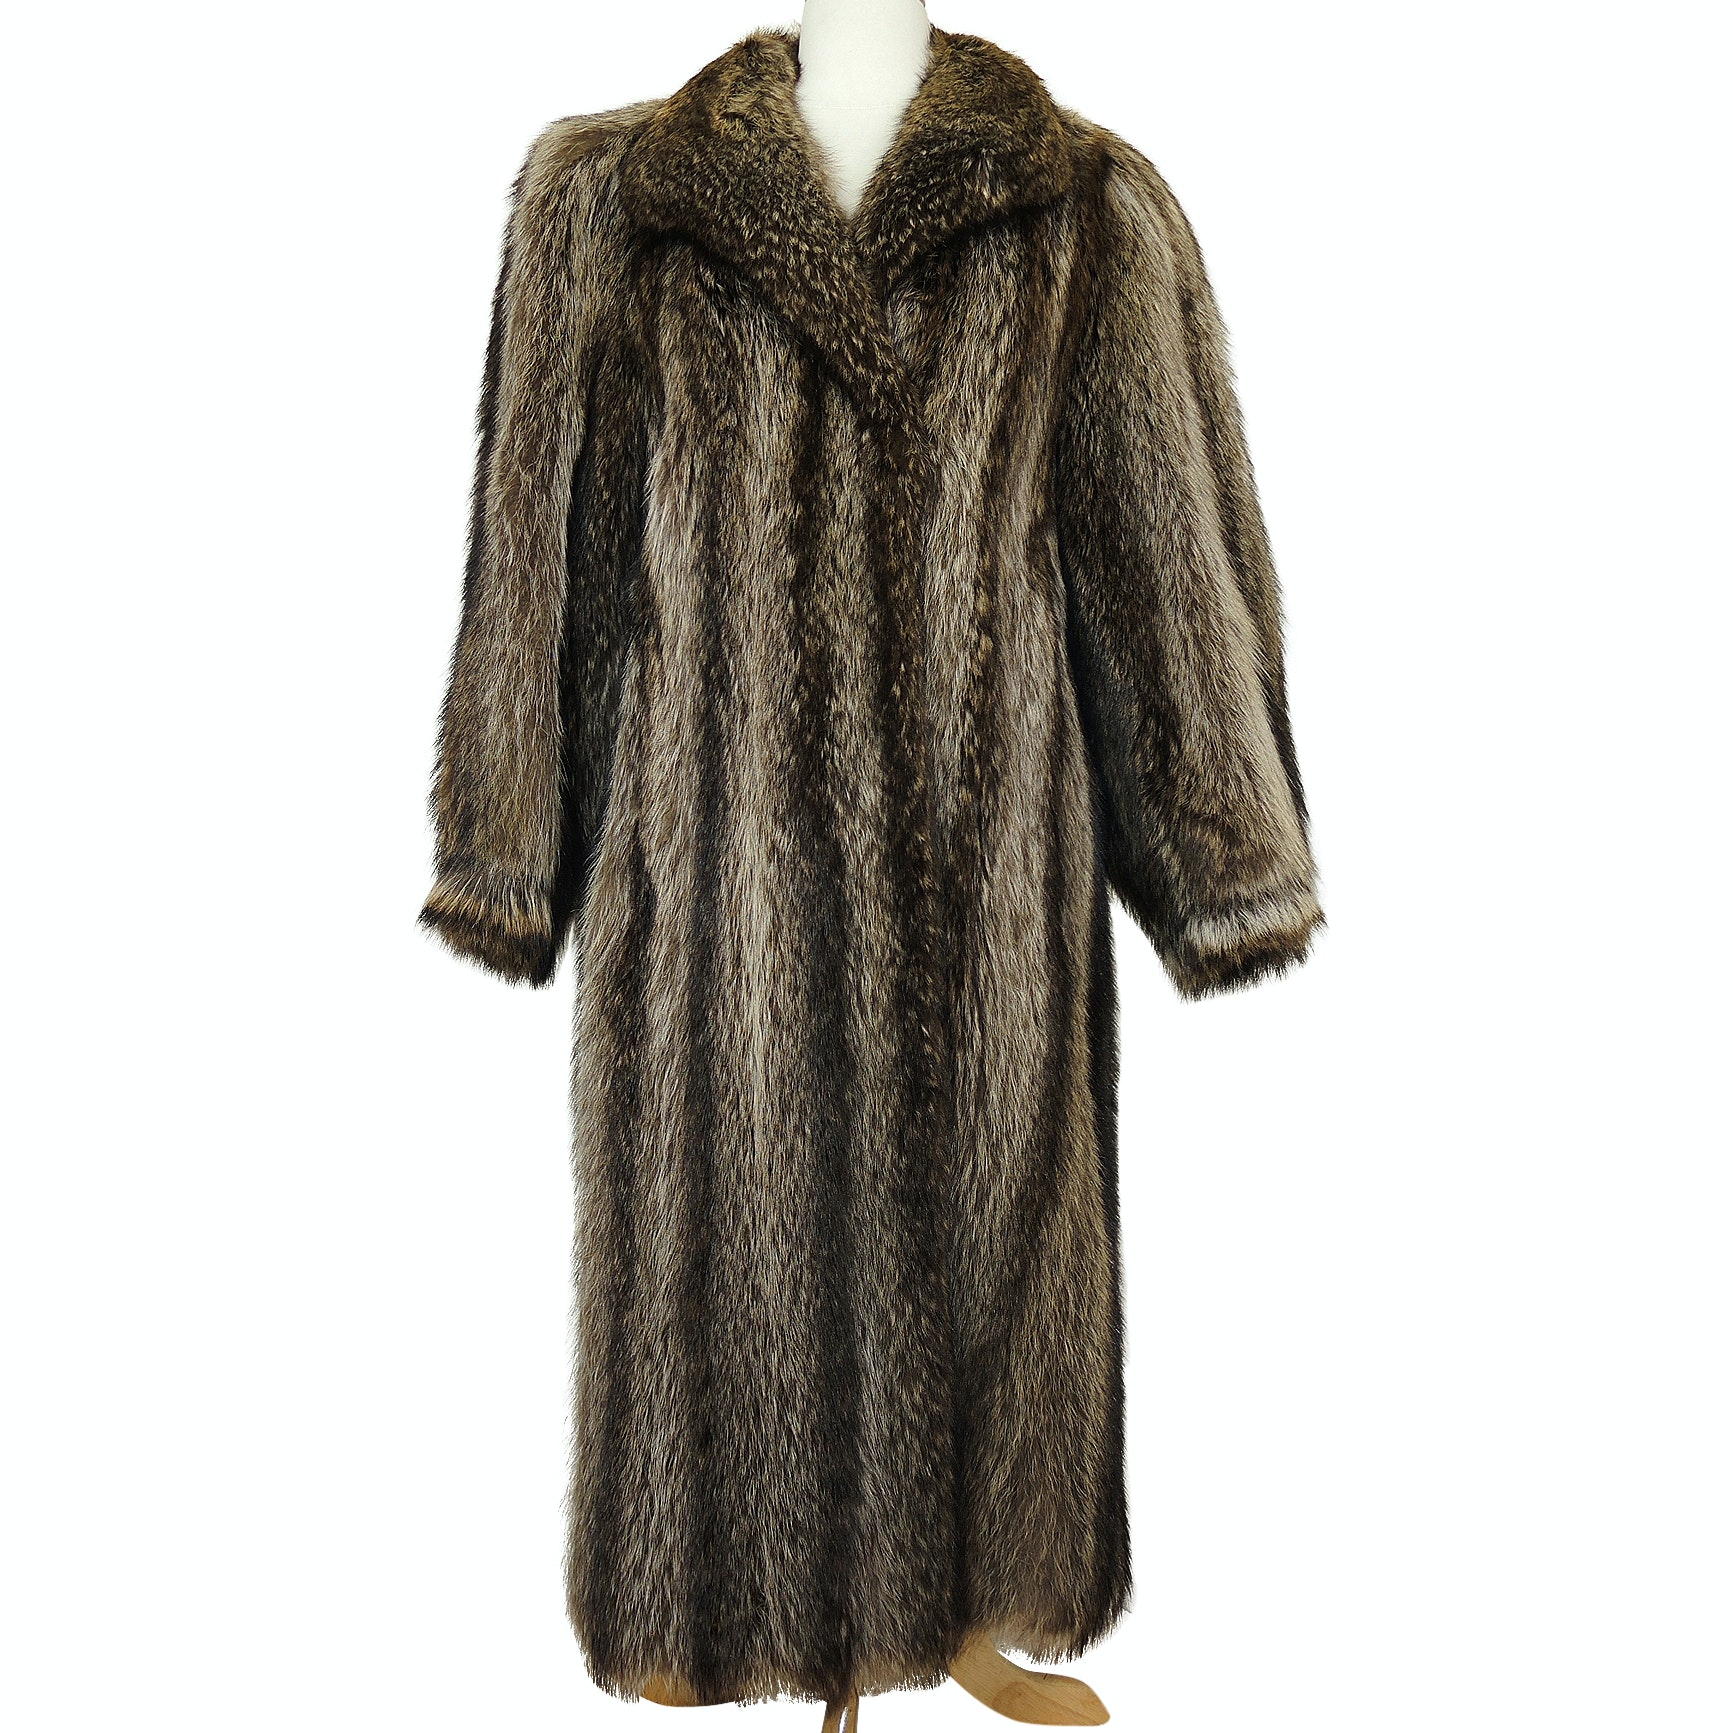 Vintage Parisian Raccoon Fur Coat